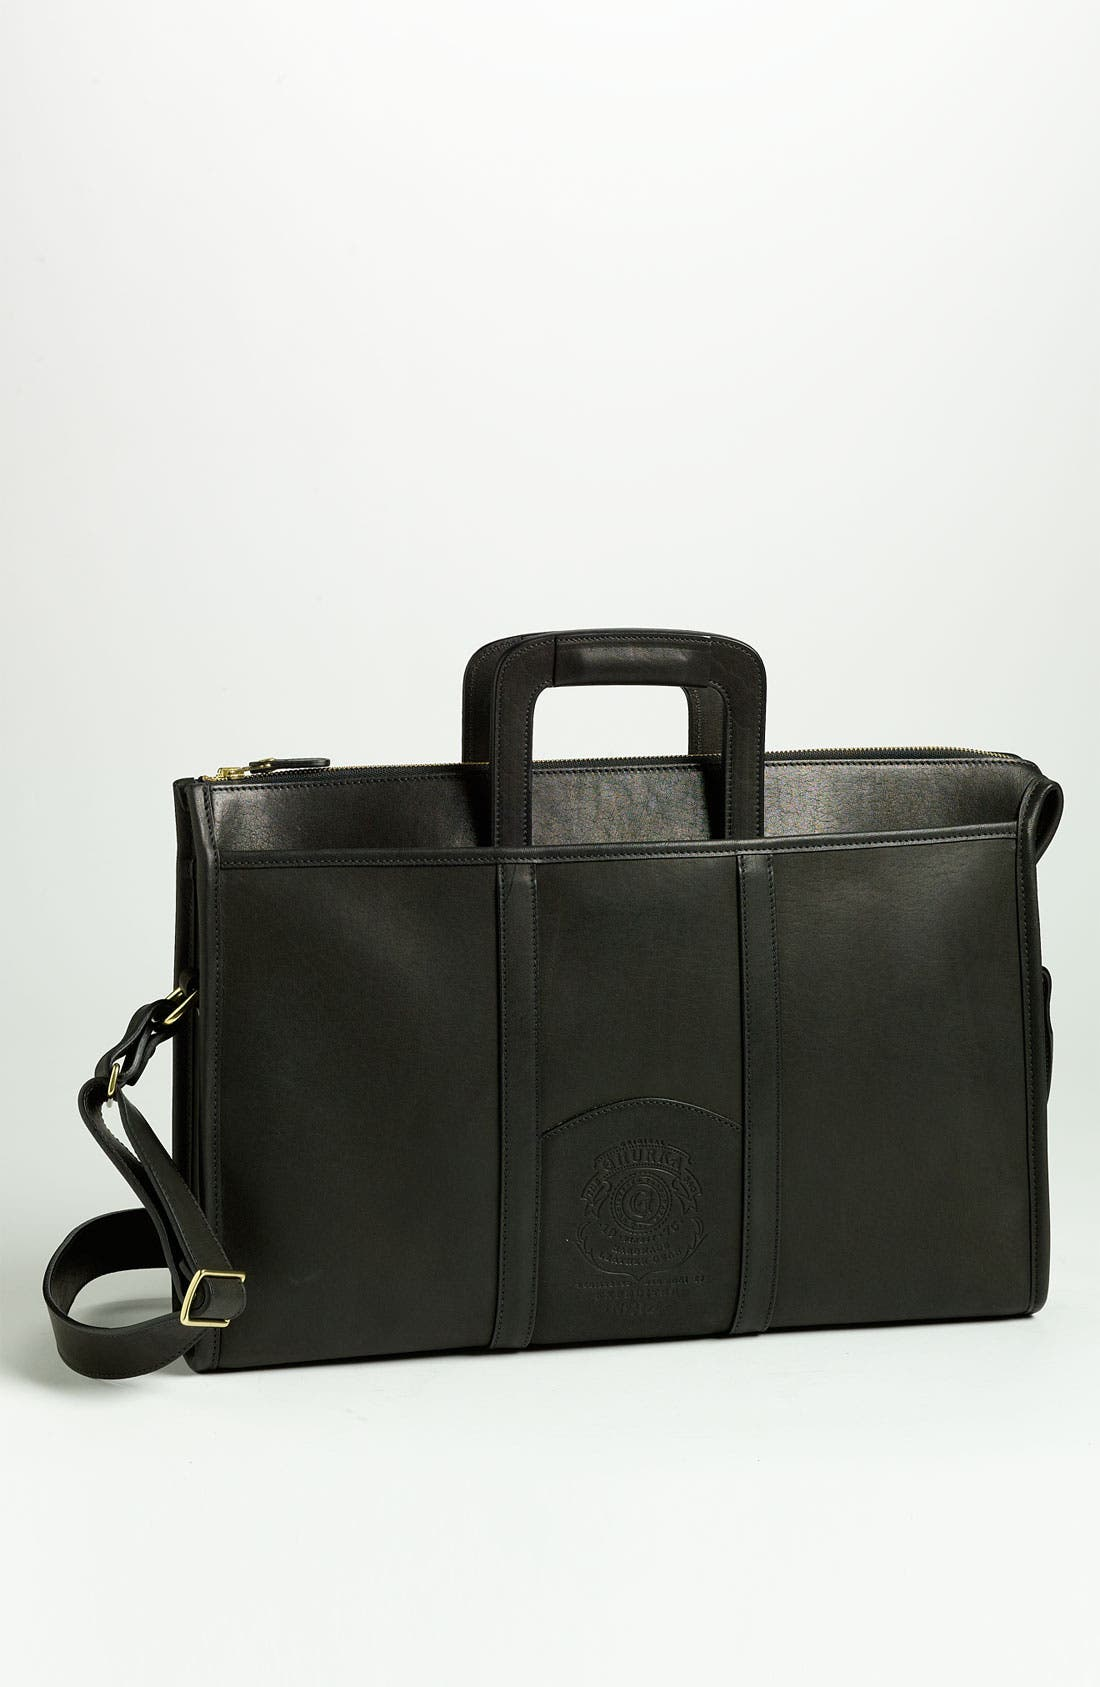 Main Image - Ghurka 'Expeditor' Leather Briefcase